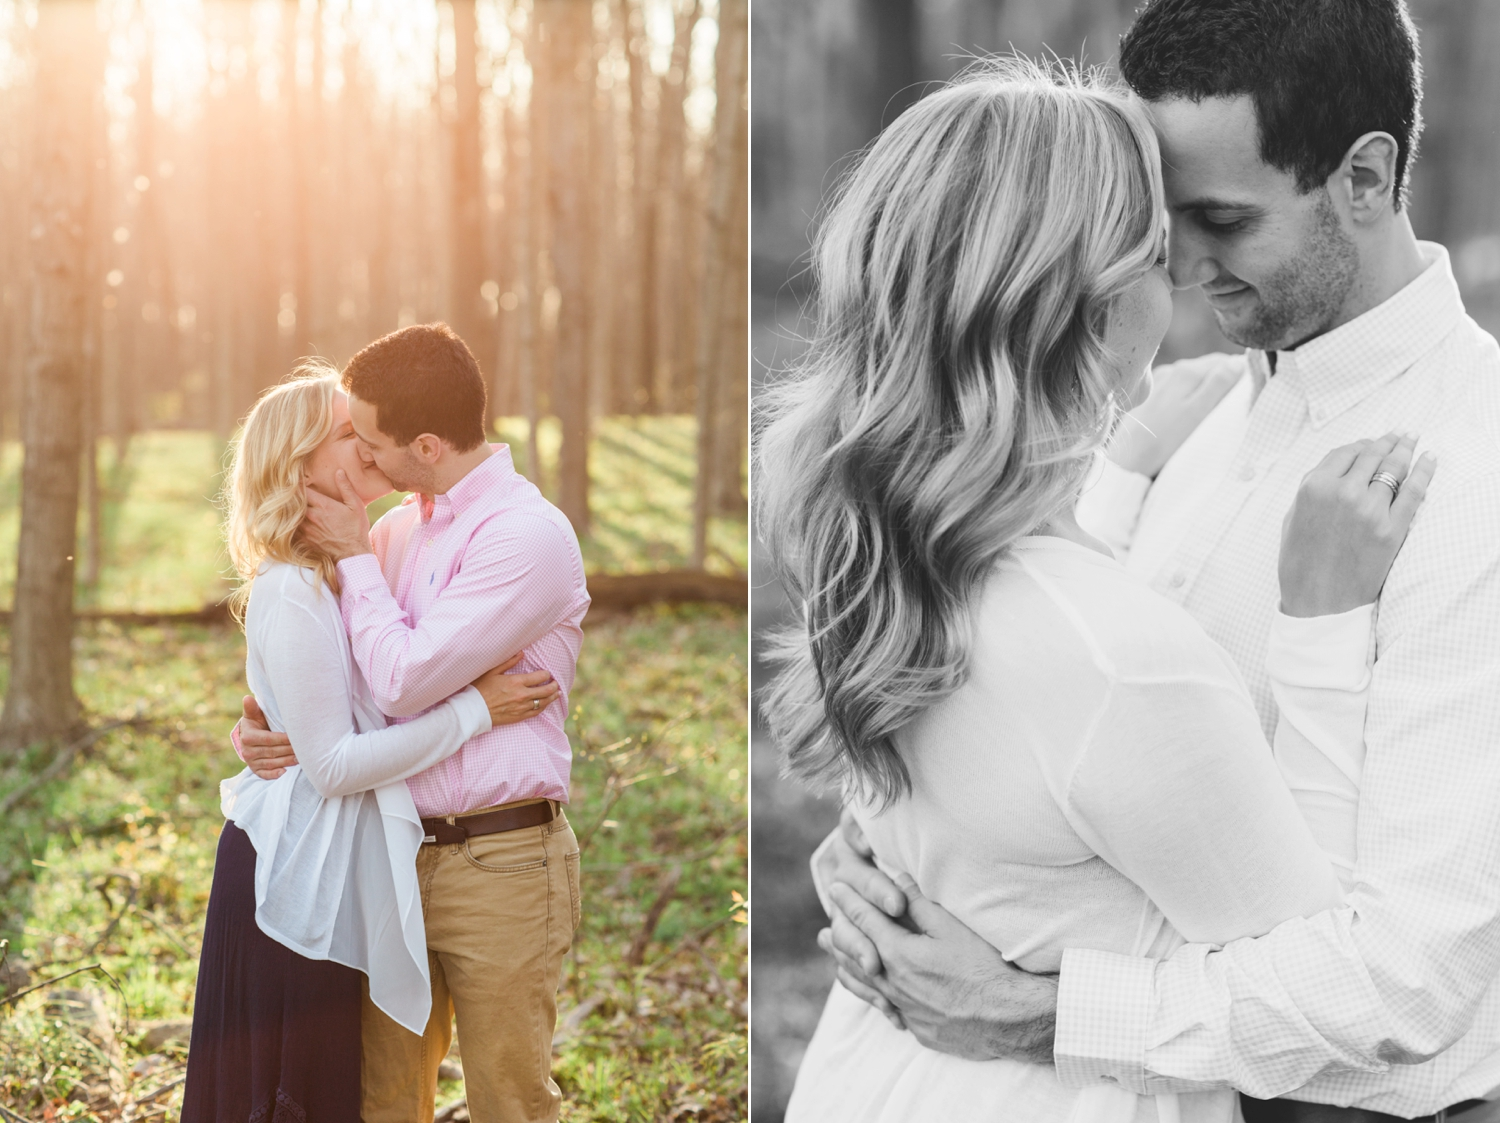 indianapolis_wedding_photographer_golden_hour_engagement_chloe_luka_photography_6109.jpg